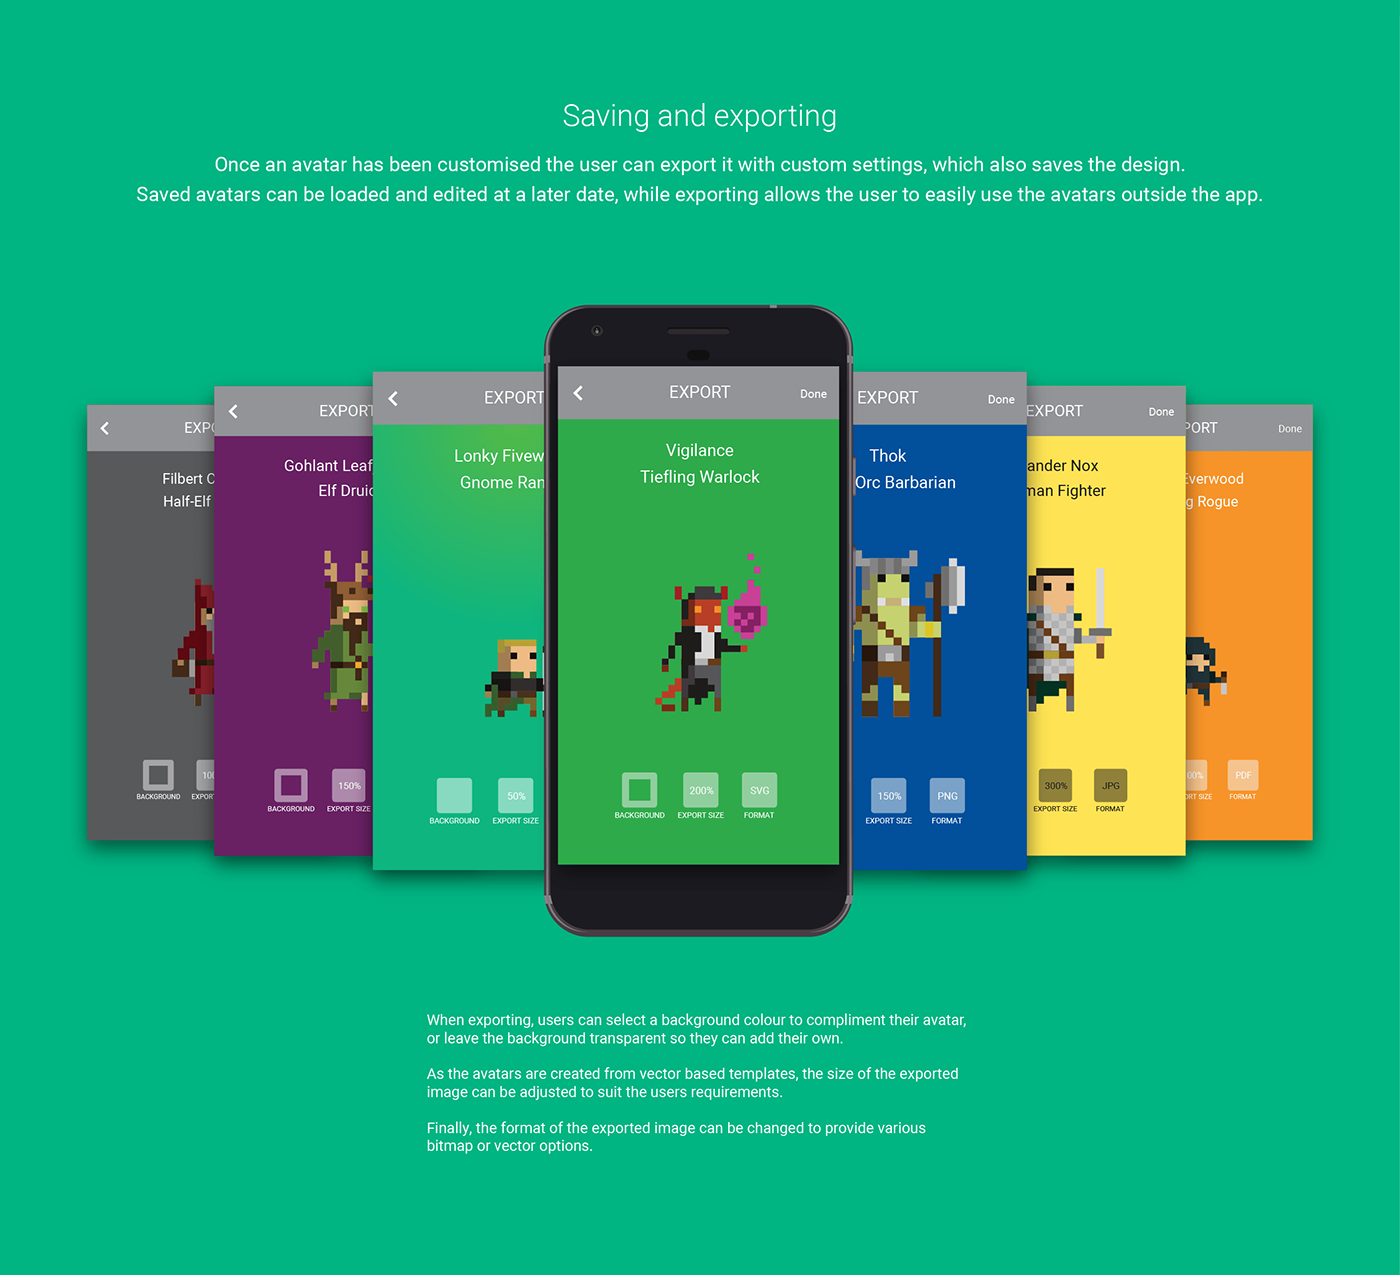 Pixel art ILLUSTRATION  android Games Dungeons and Dragons concept app UI/UX